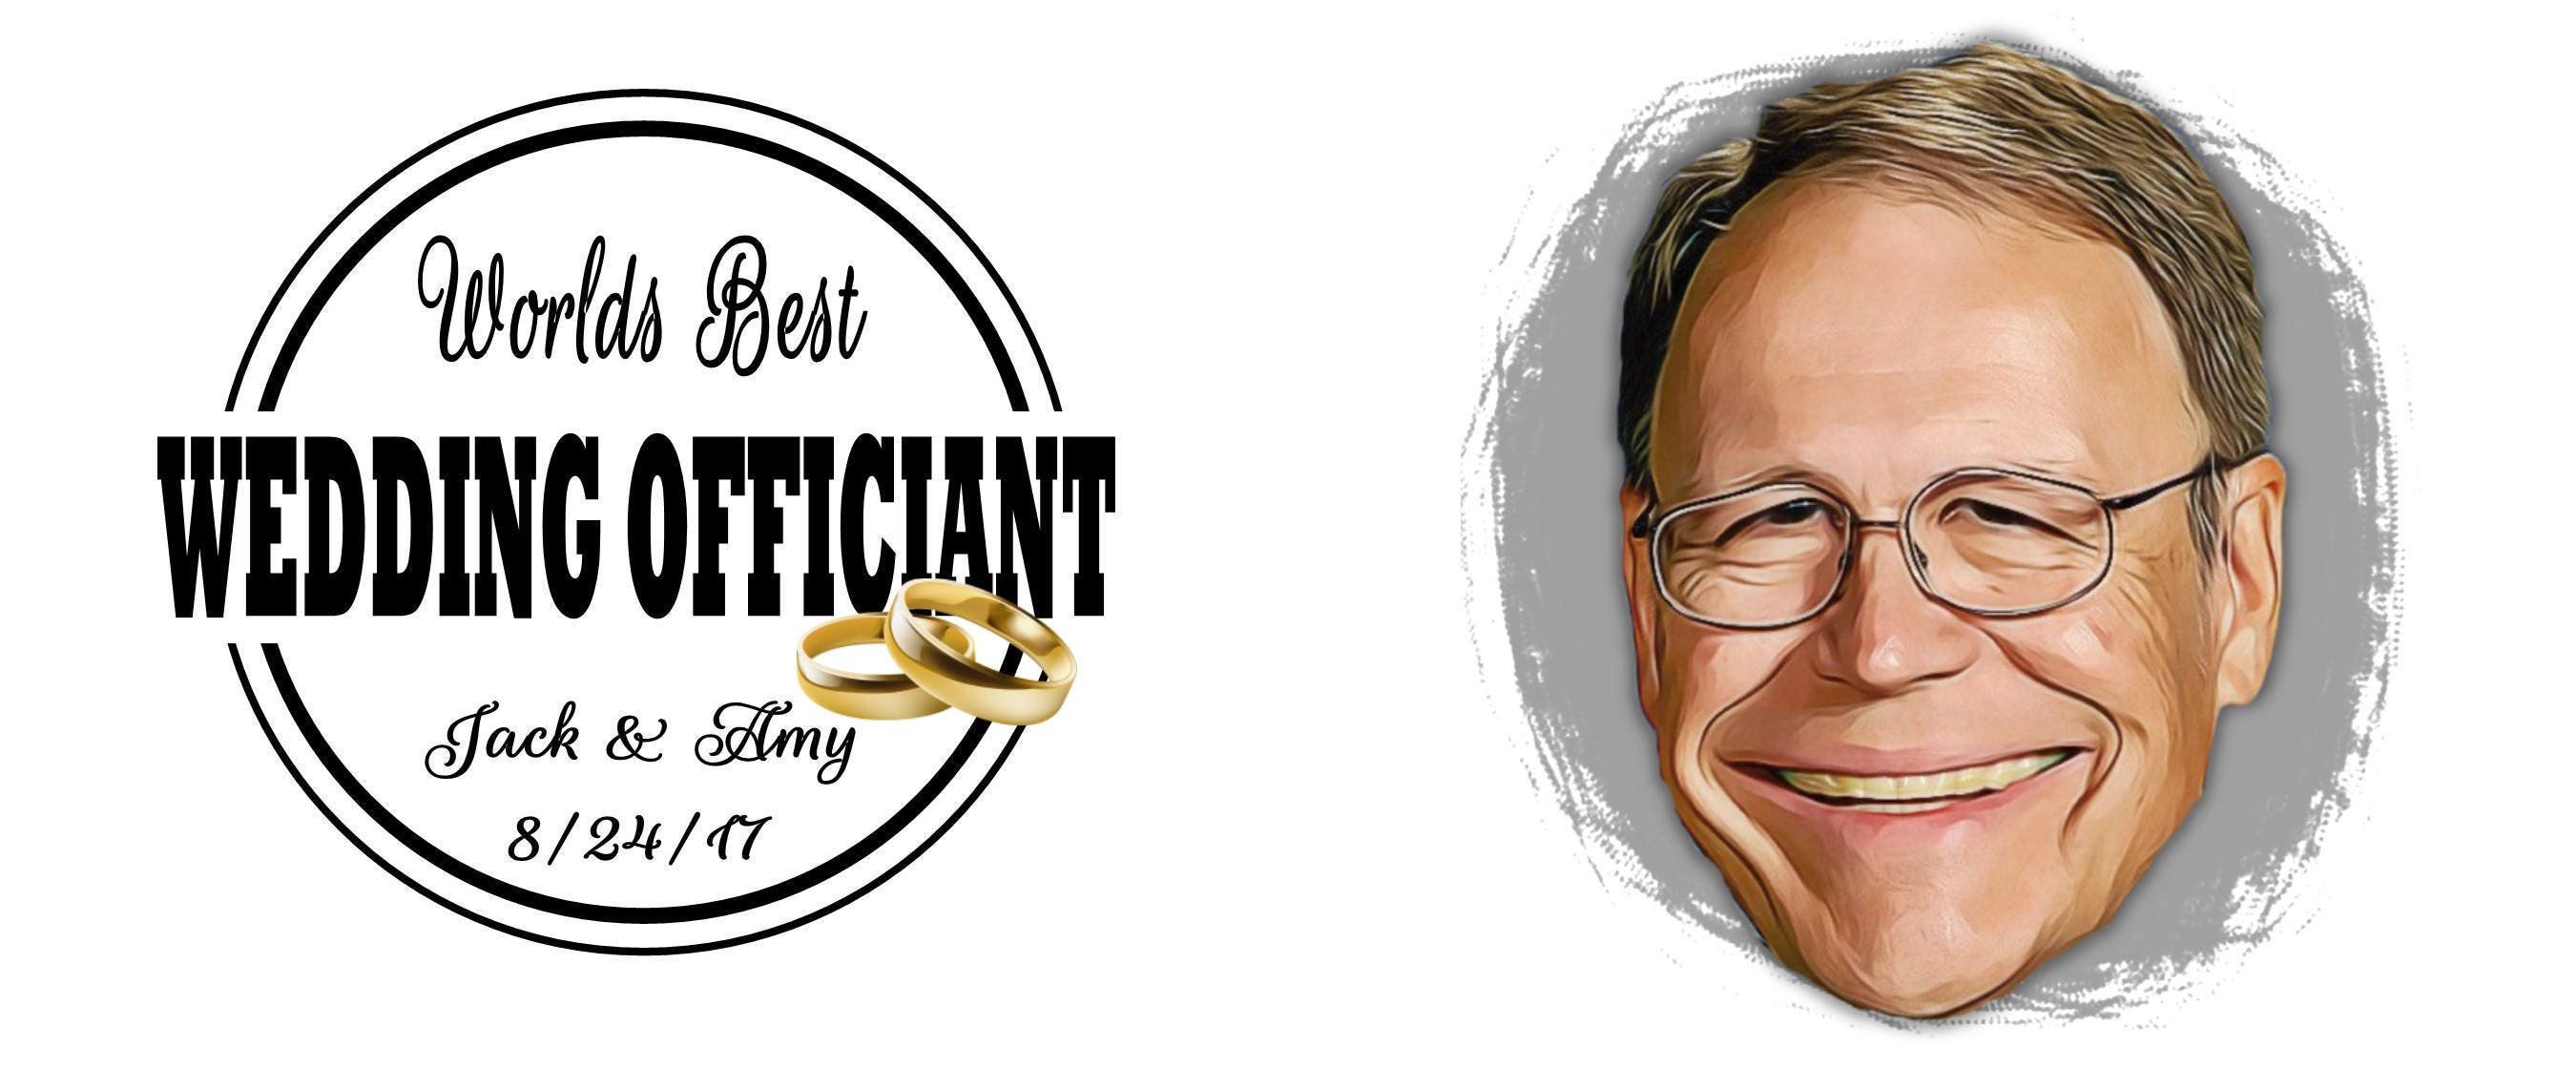 Pastor Gift Ideas Cartoon Worlds Best Officiant Caricature Guys Idea Gifts Portrait Thank You For Marrying Us